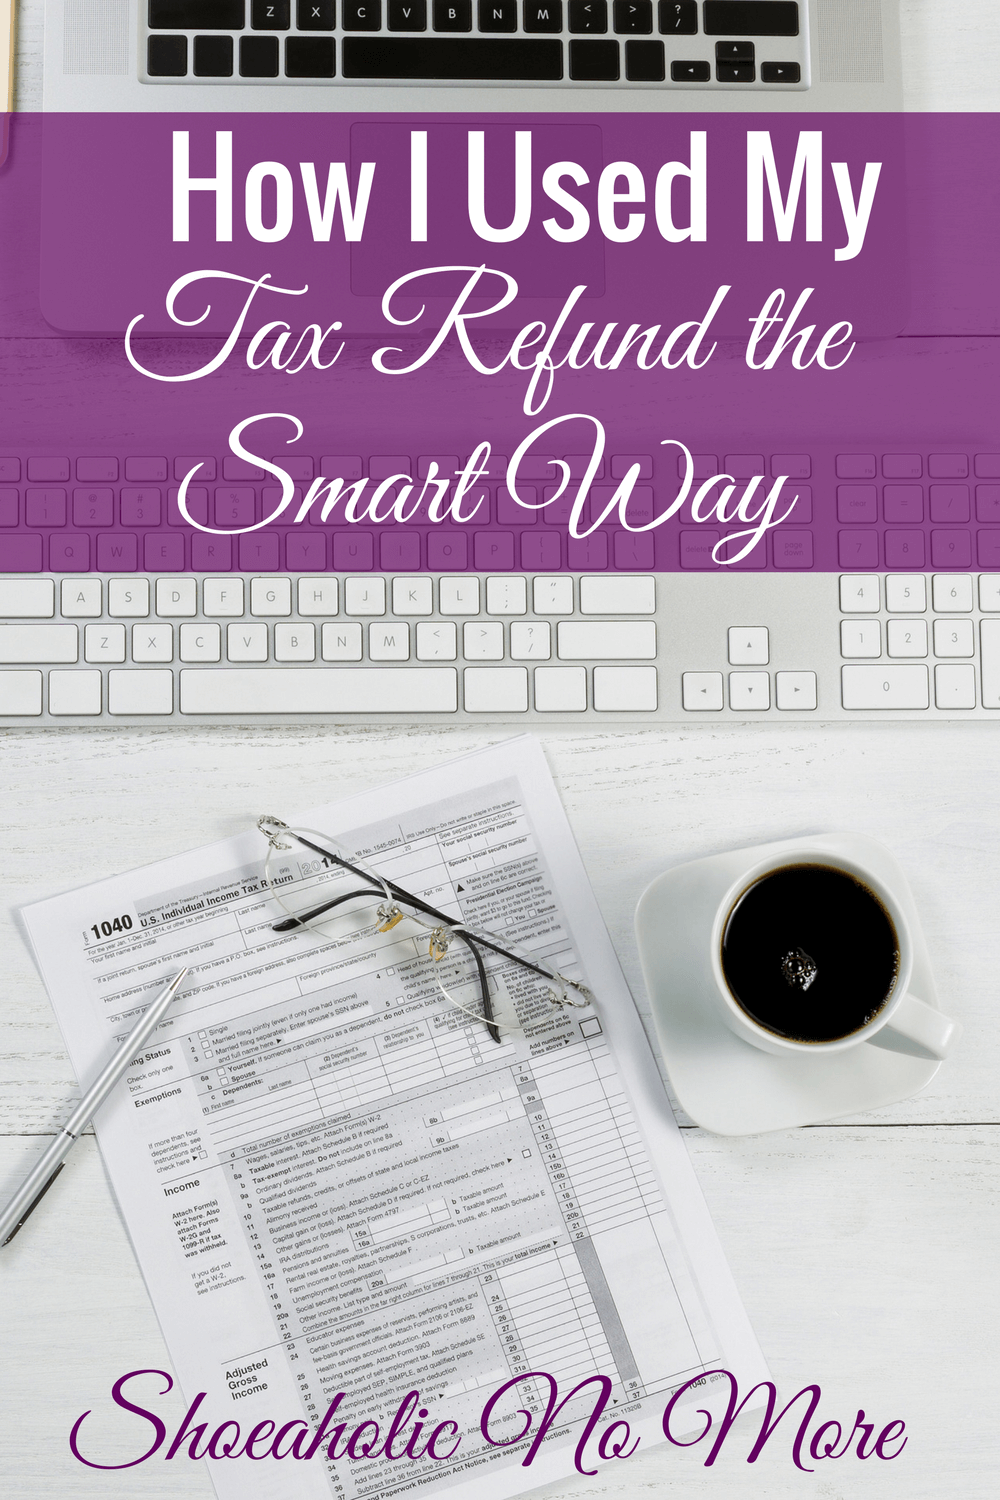 This blogger shows how she spent her refund to start her business and pay off debt!